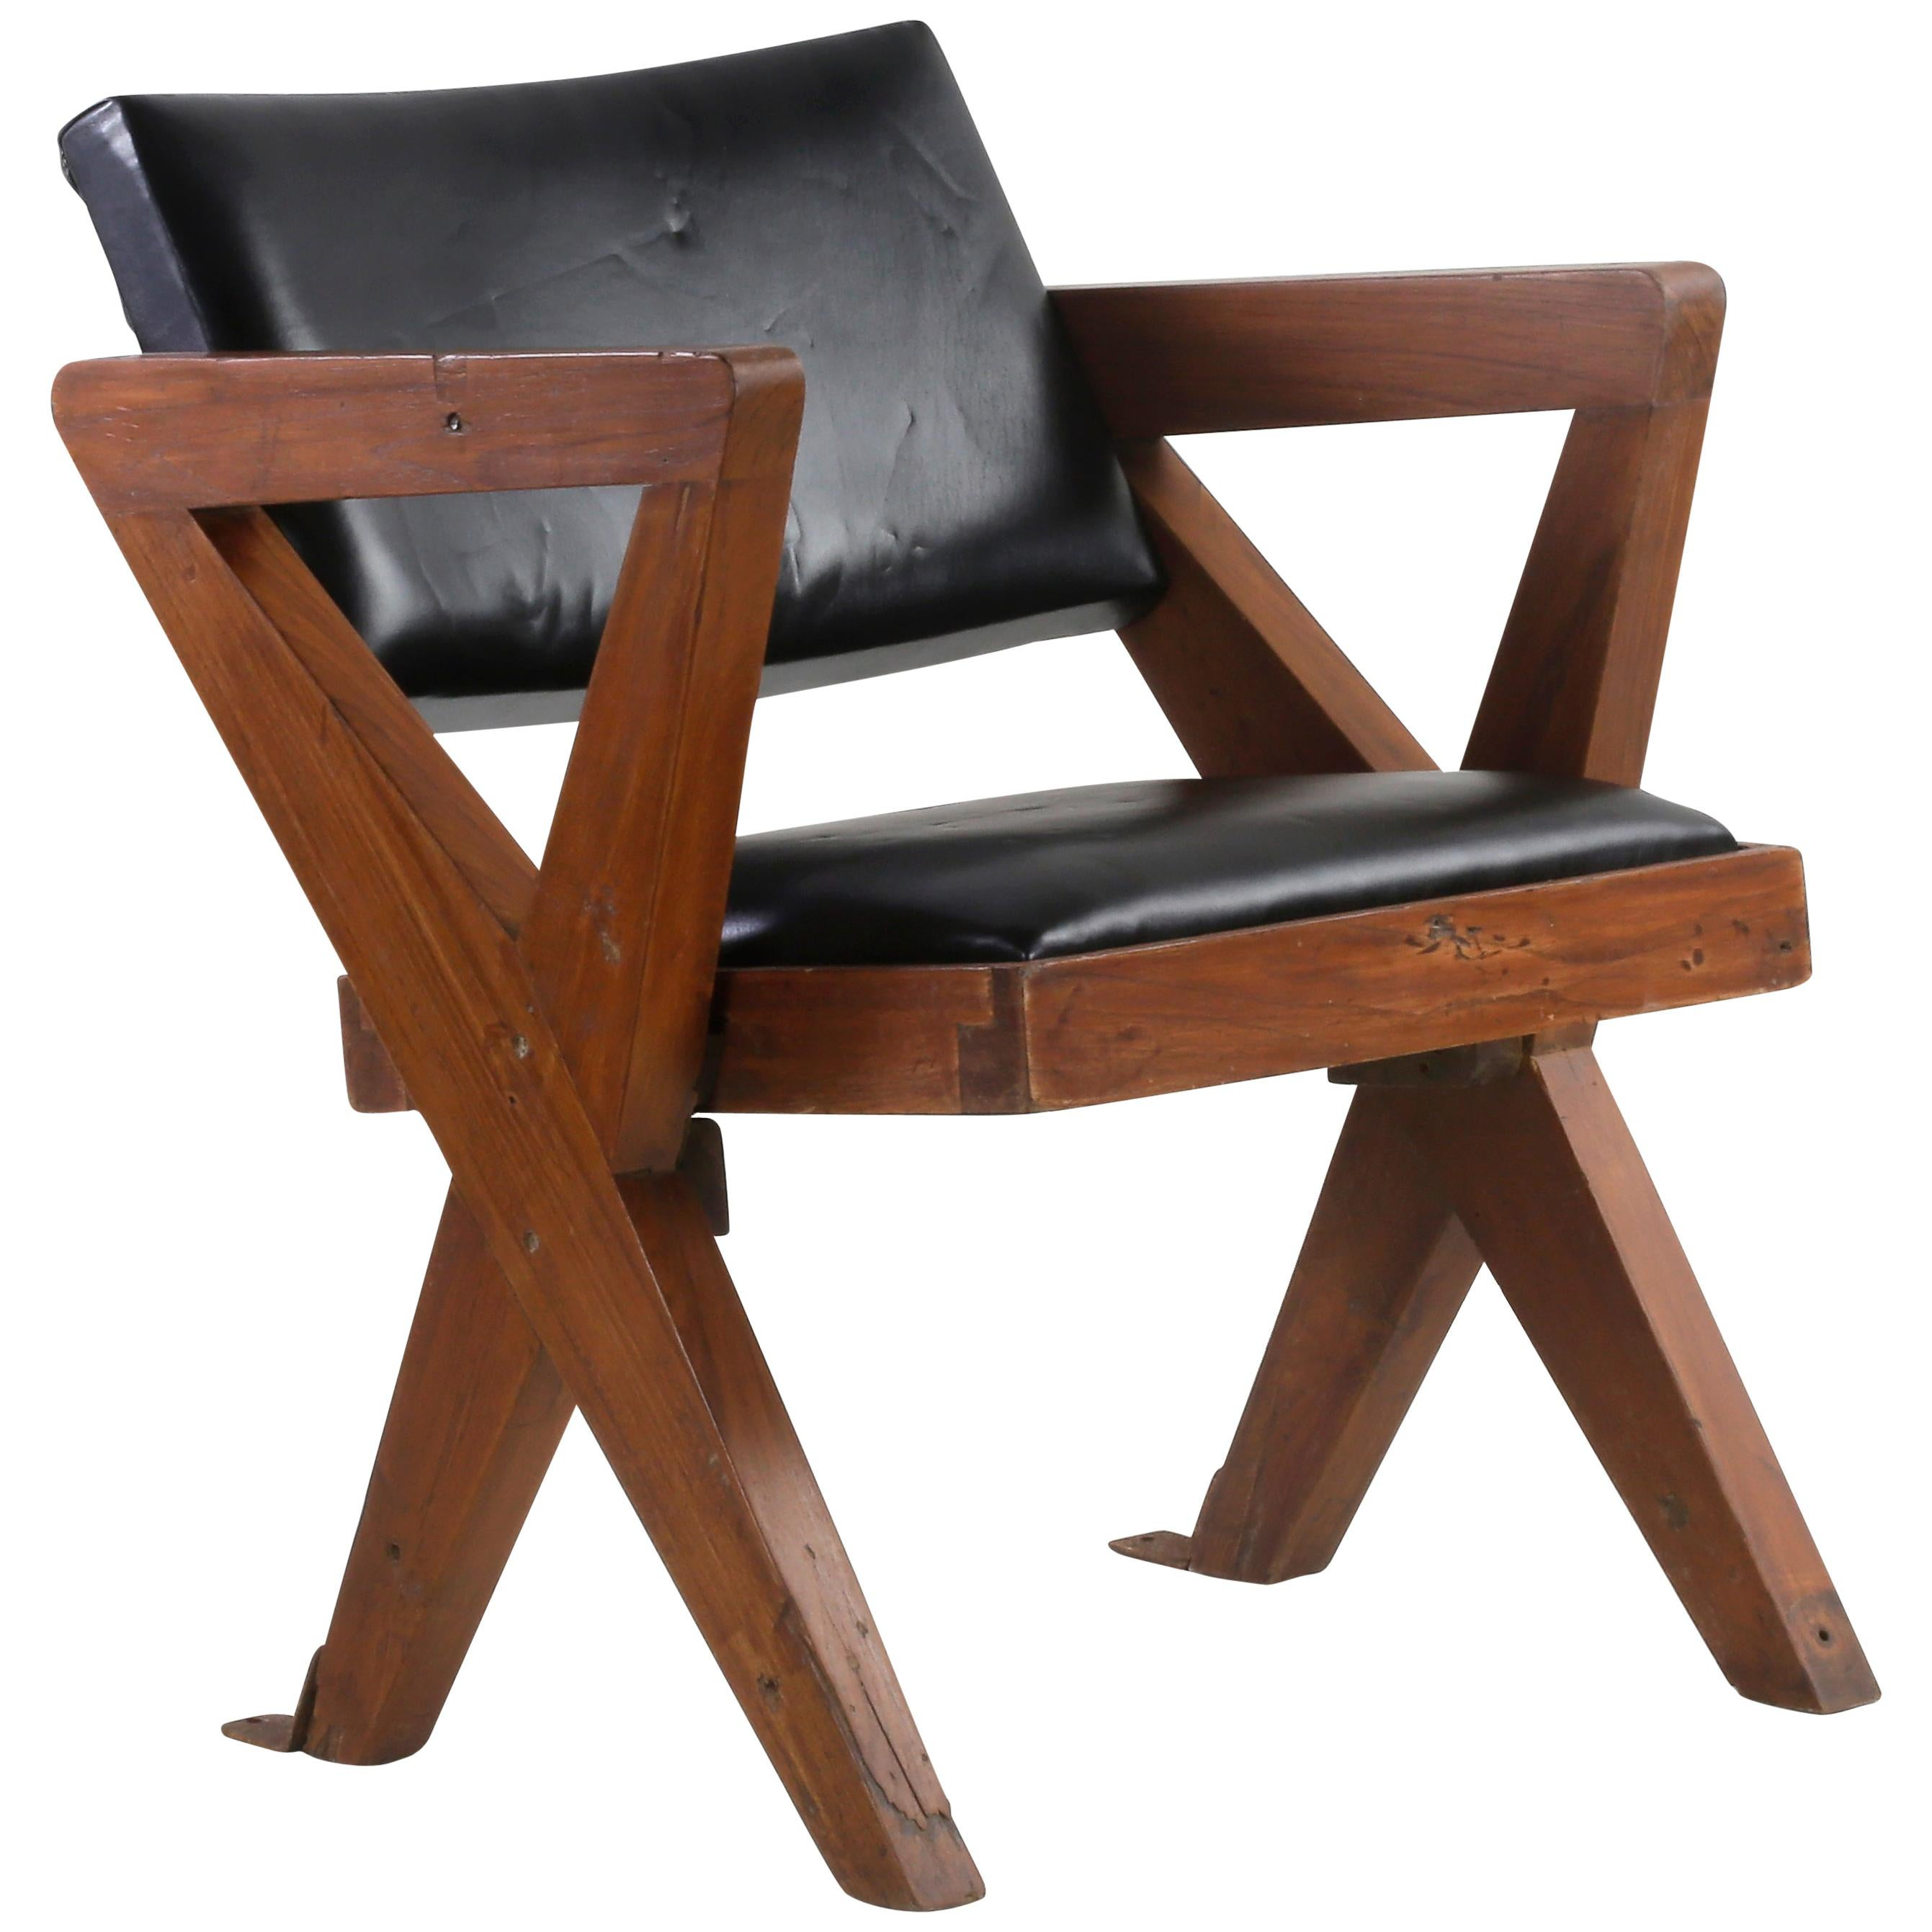 Pierre Jeanneret Teak & Leather Chair Authentic Mid-Century Modern PJ-SI-49-A